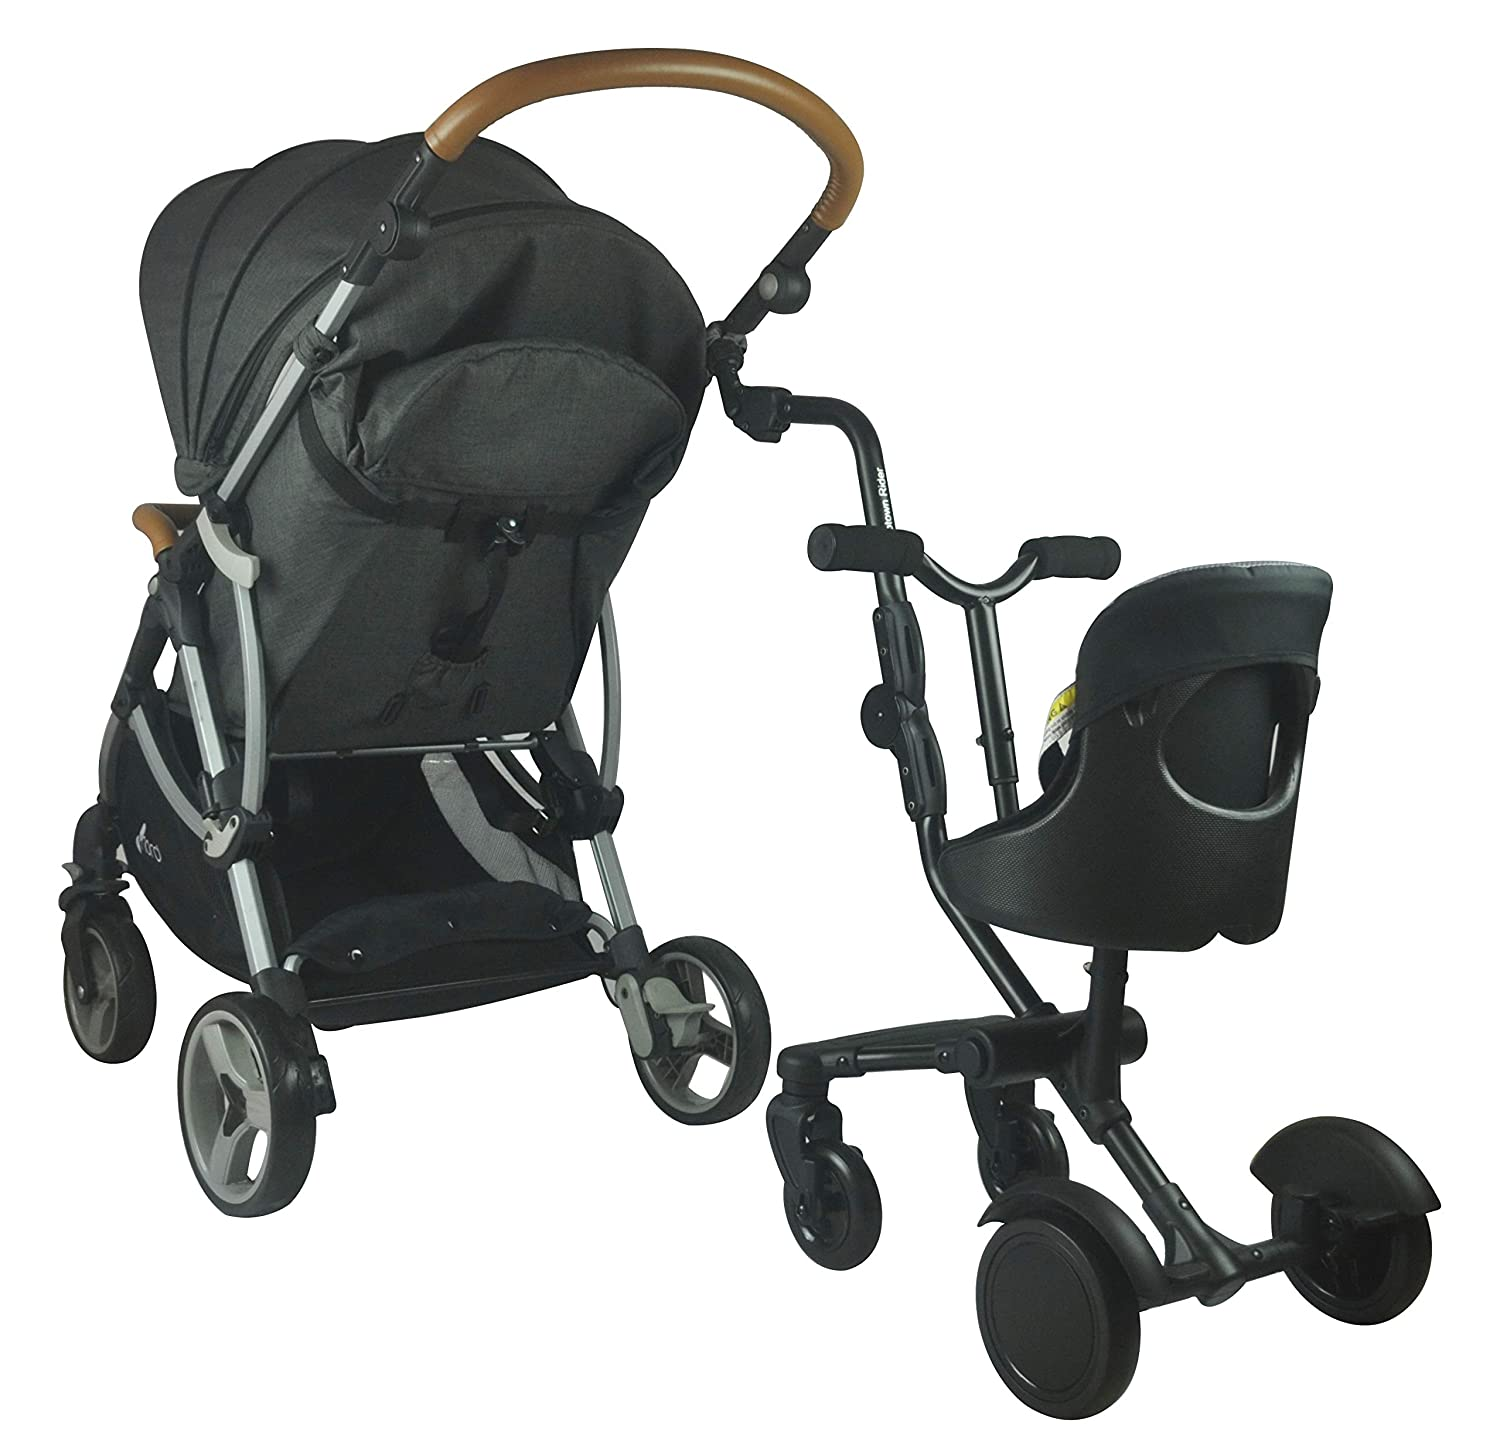 Quick and Easy to Use Child Rides Alongside Stroller Attachment with Comfy Padded Saddle Seat Designed for Safety Universal Fit for Most Strollers Englacha Uptown Rider